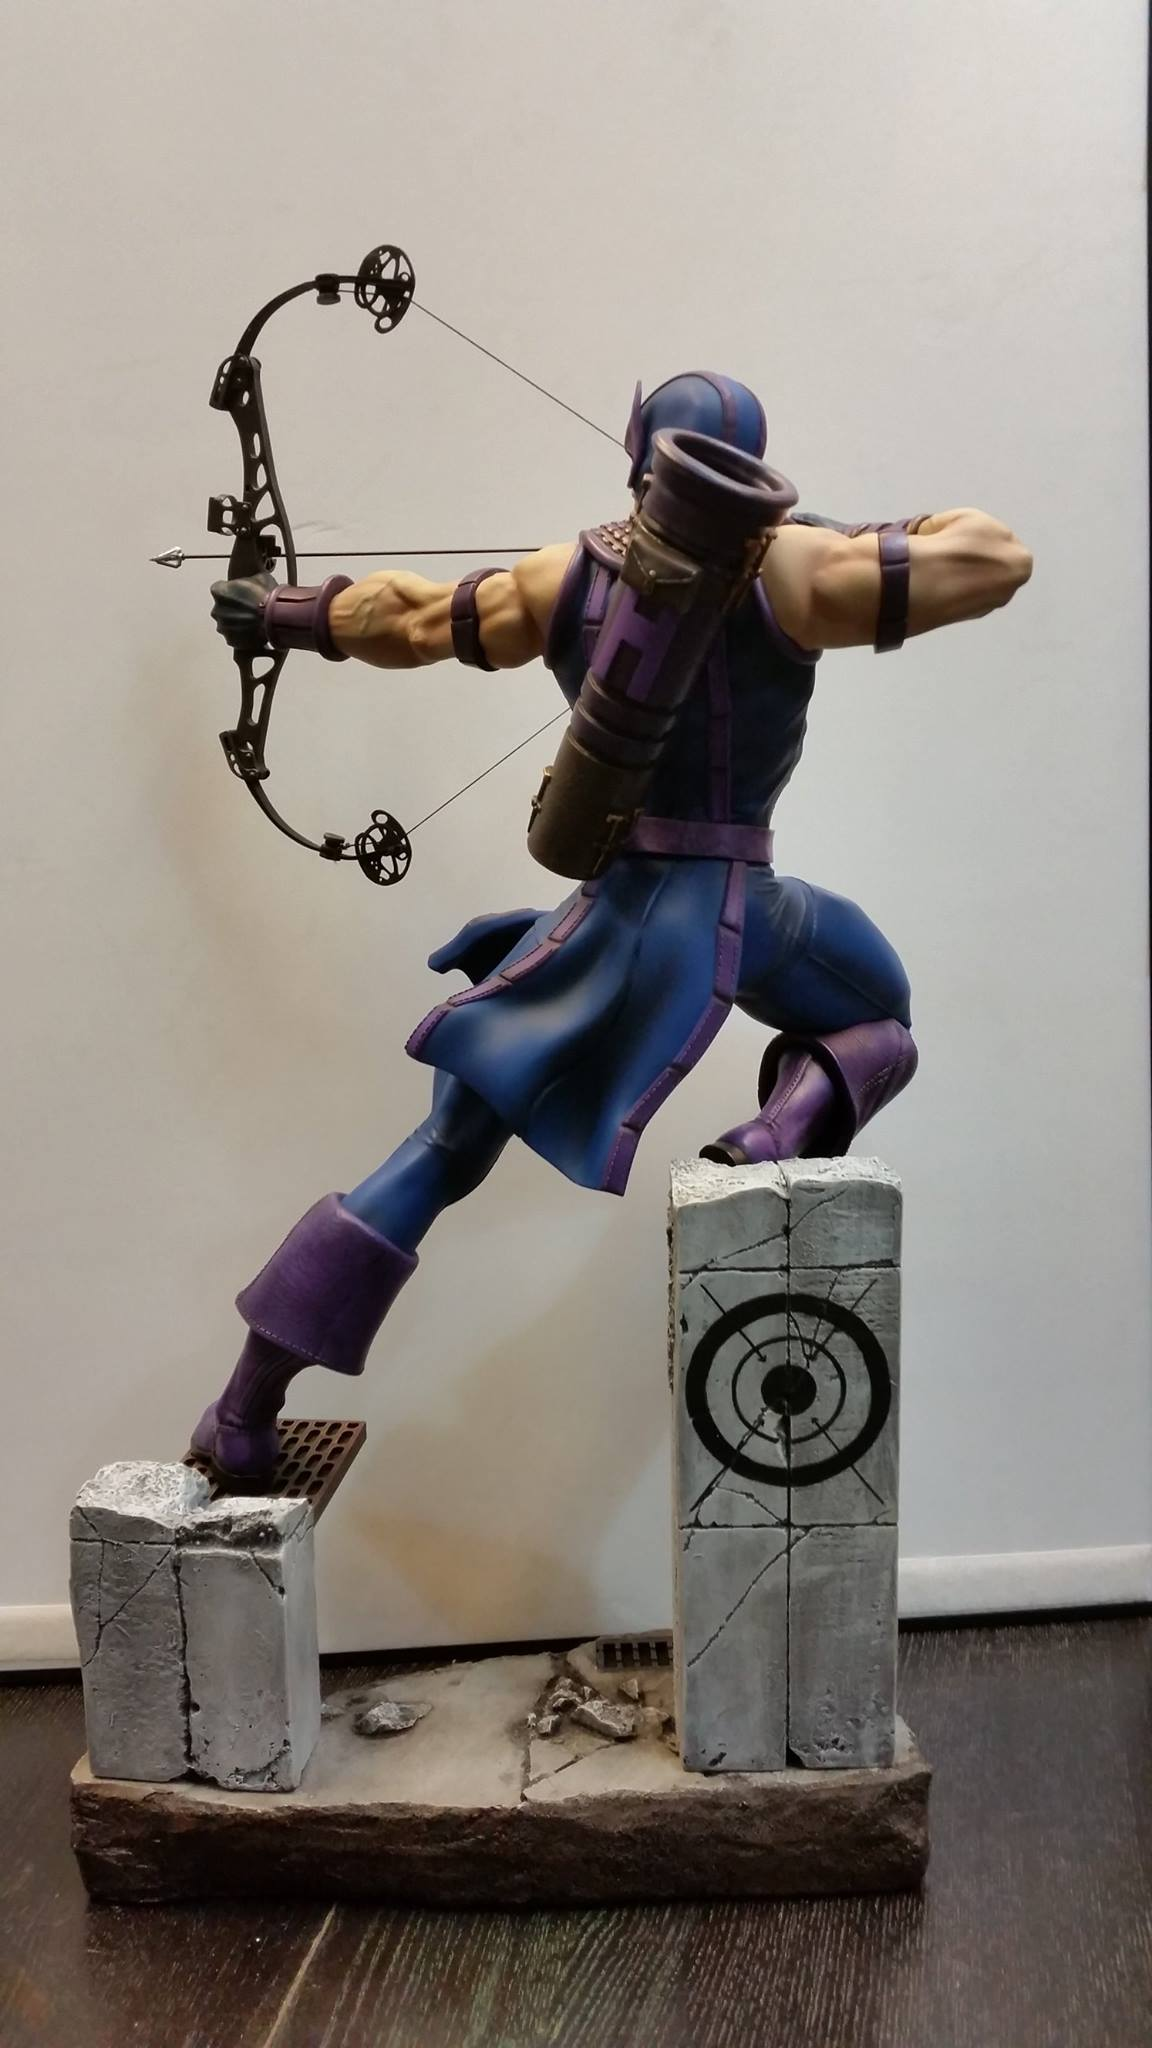 Premium Collectibles : Hawkeye - Comics version - Page 2 1330511050496514069949795211971996547707723500499o